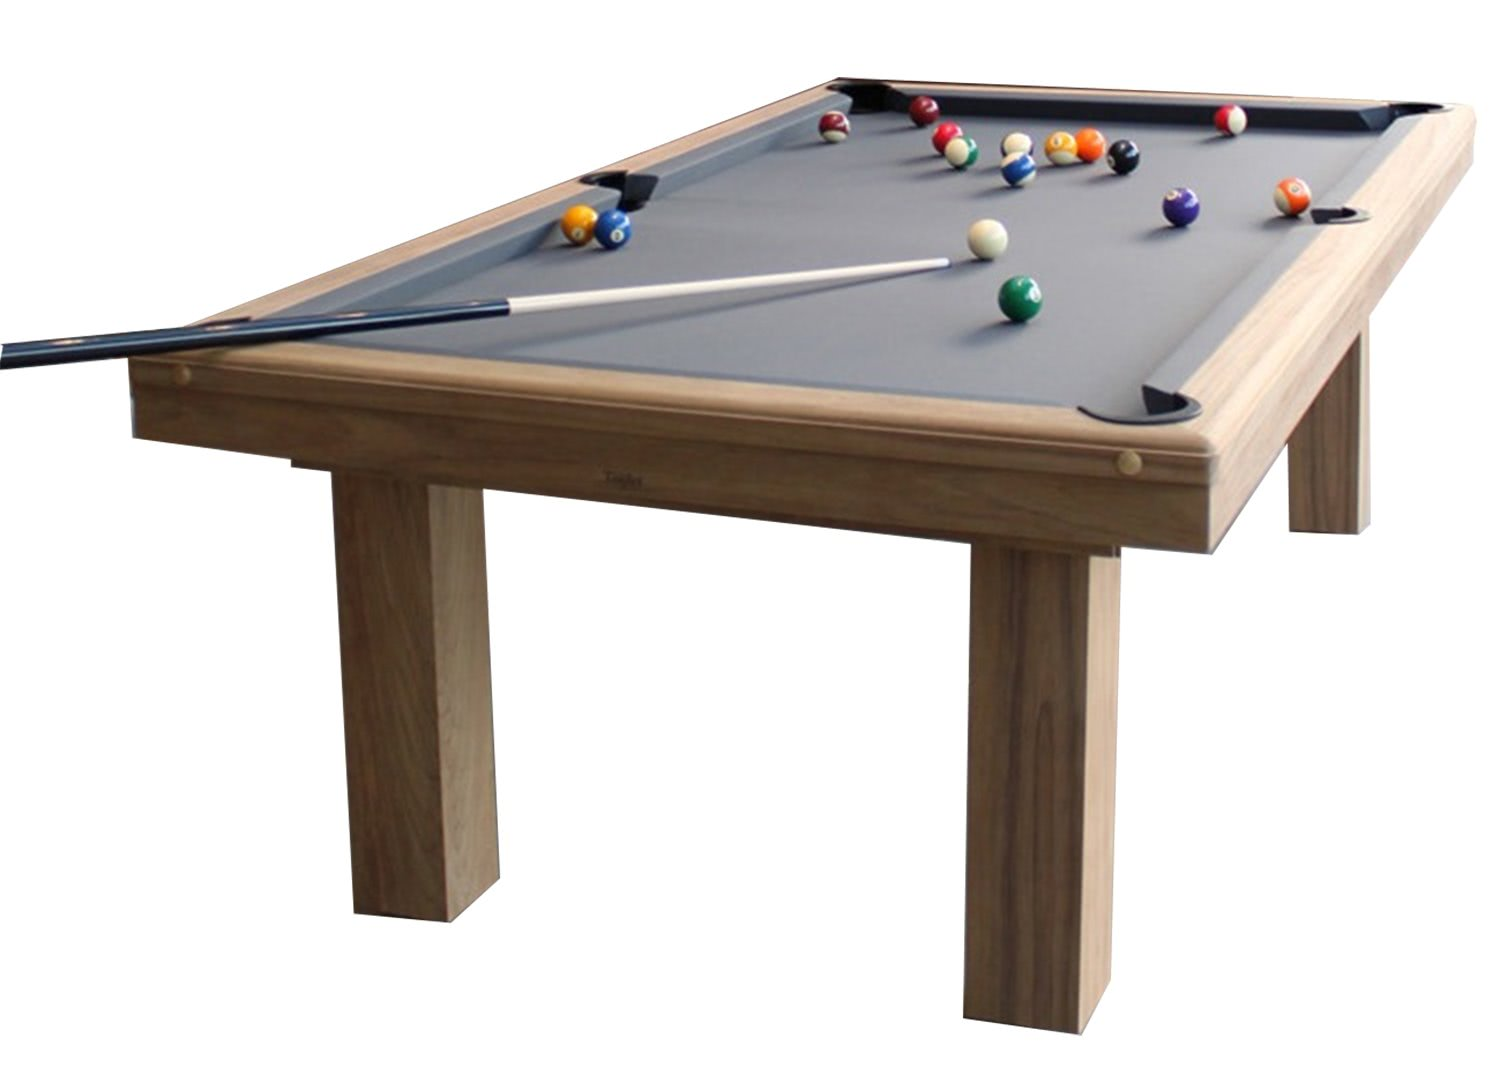 Billard toulet outdoor teck pool table 6 ft 7 ft 8 ft - Used outdoor table tennis tables for sale ...